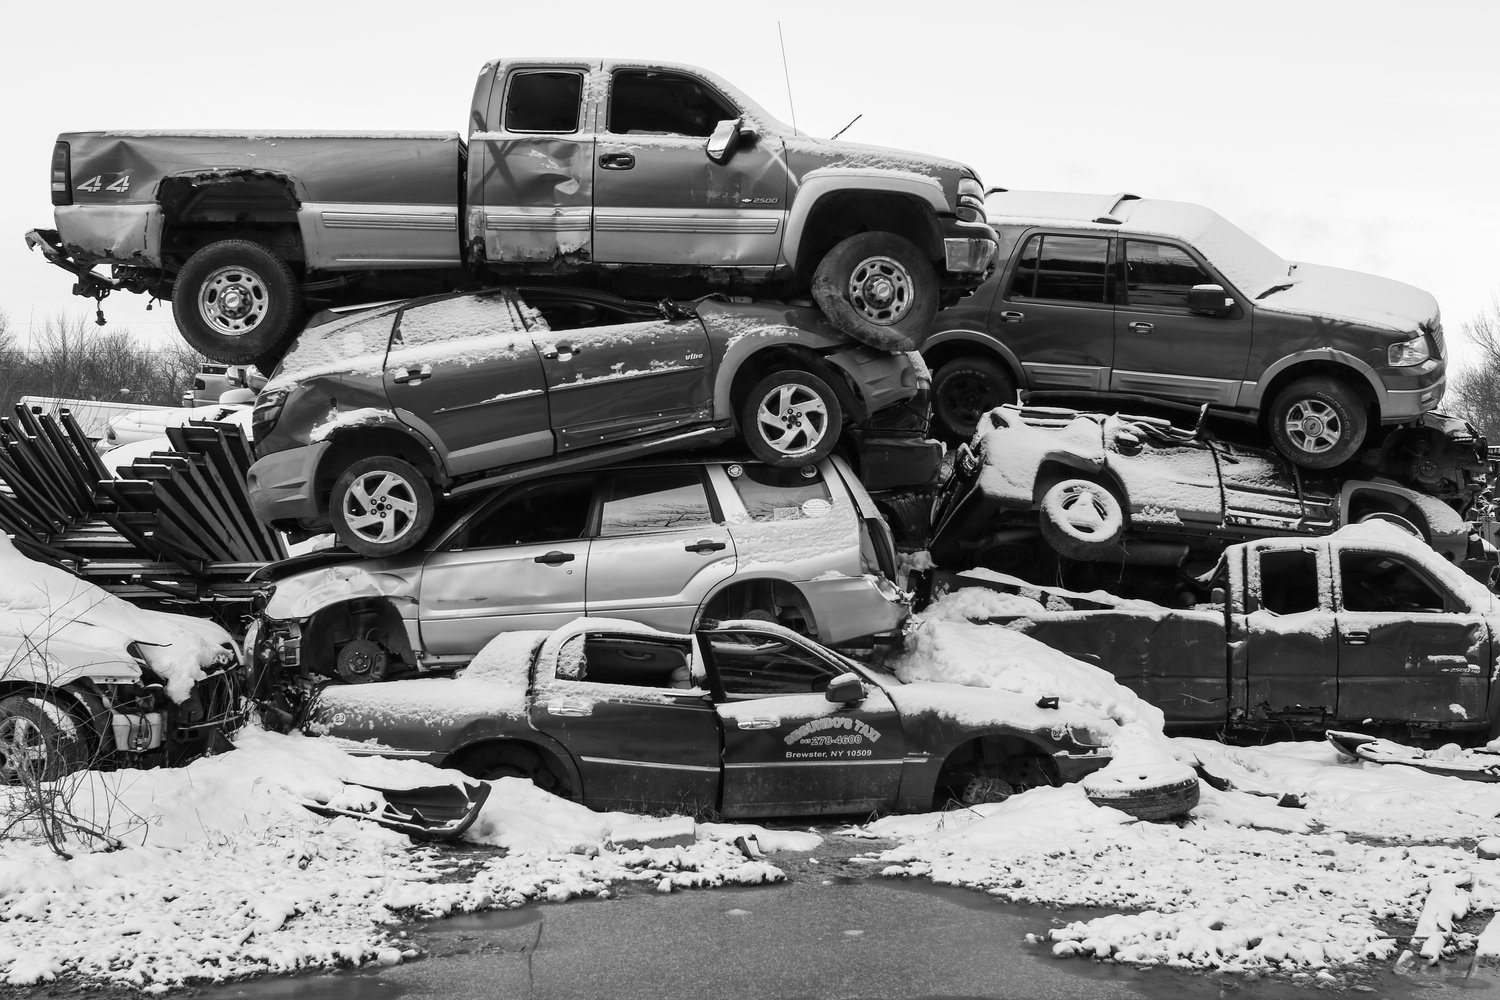 the south west collective Caleb stein junk yard and scarp cars in the snow